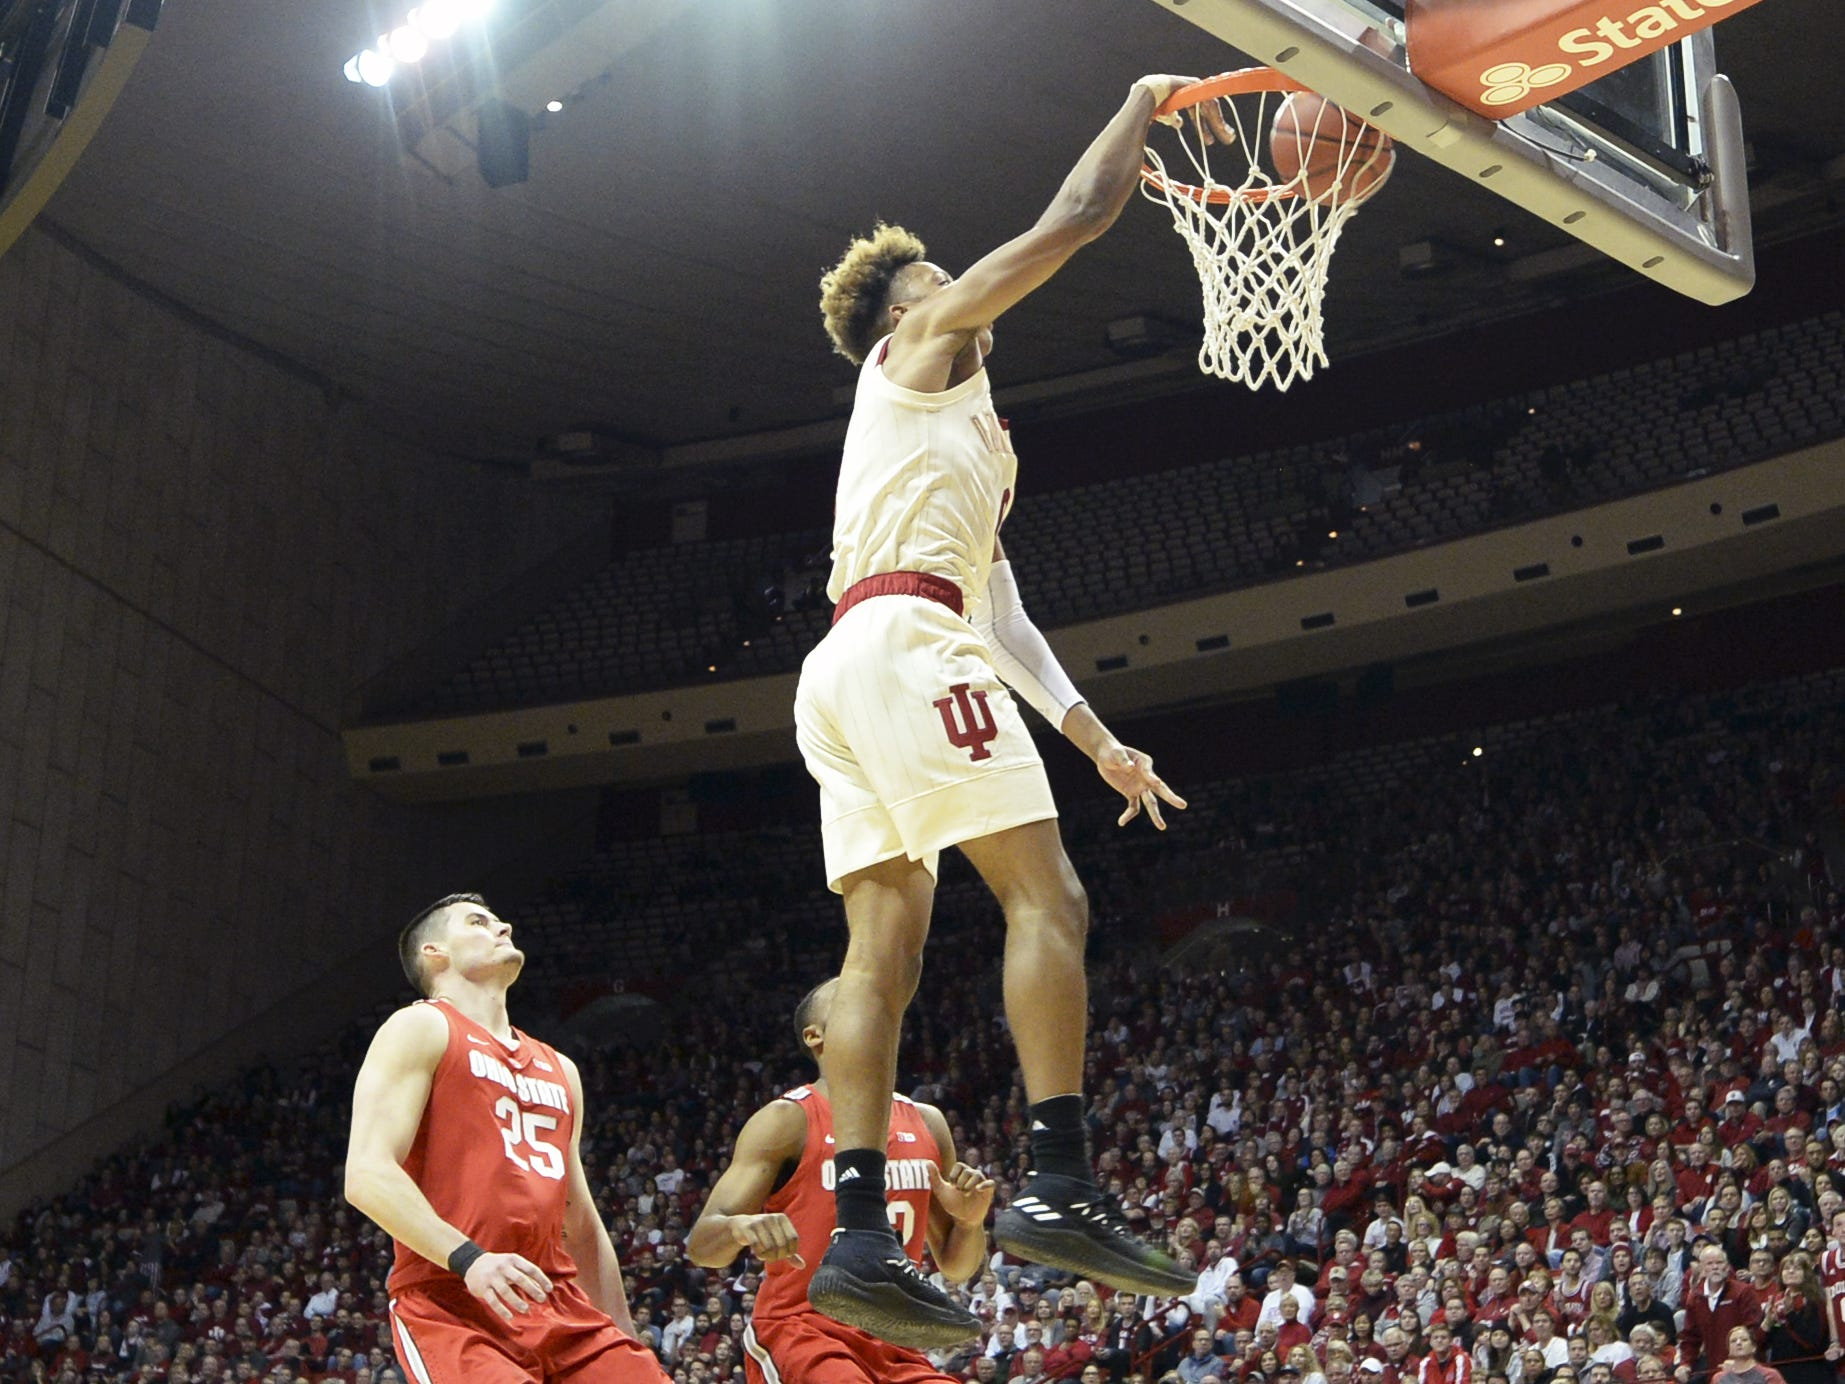 Indiana Hoosiers guard Romeo Langford (0) dunks the ball during the game against Ohio State at Simon Skjodt Assembly Hall in Bloomington Ind., on Sunday, Feb. 10, 2019.